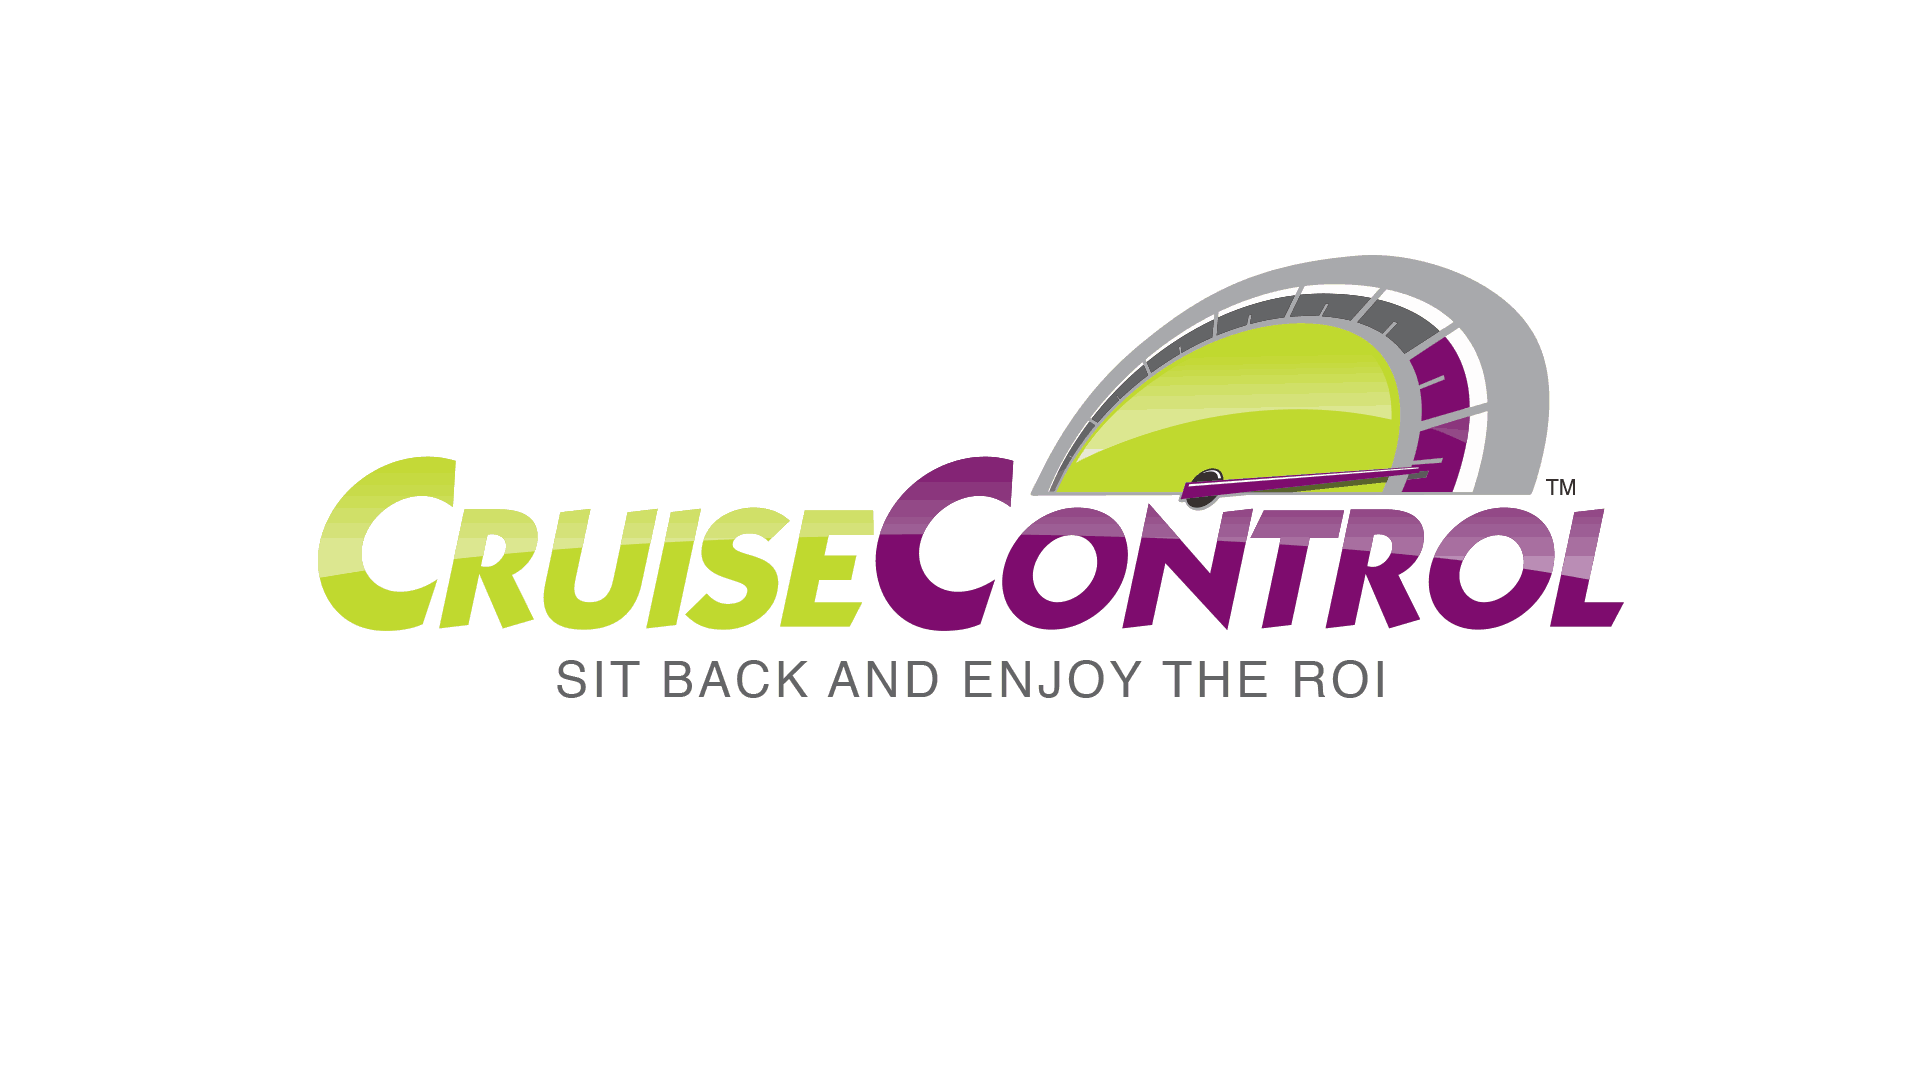 Cuise Control